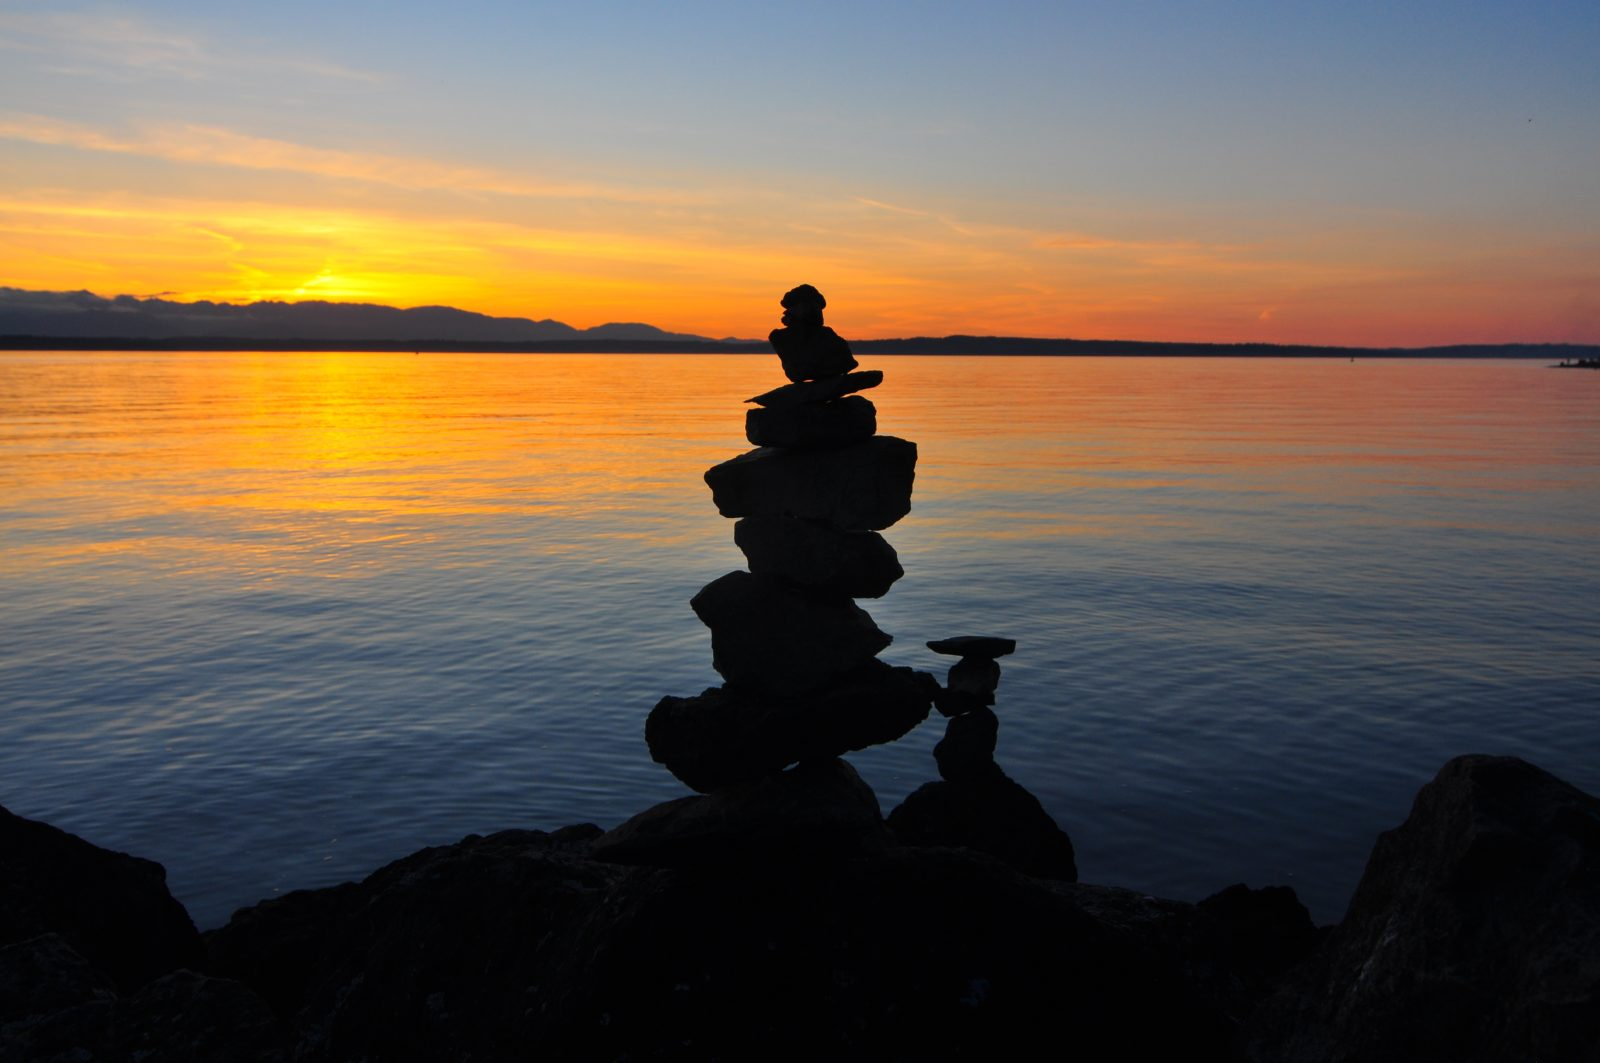 Rock balancing is an art and discipline; a balanced stack of rocks